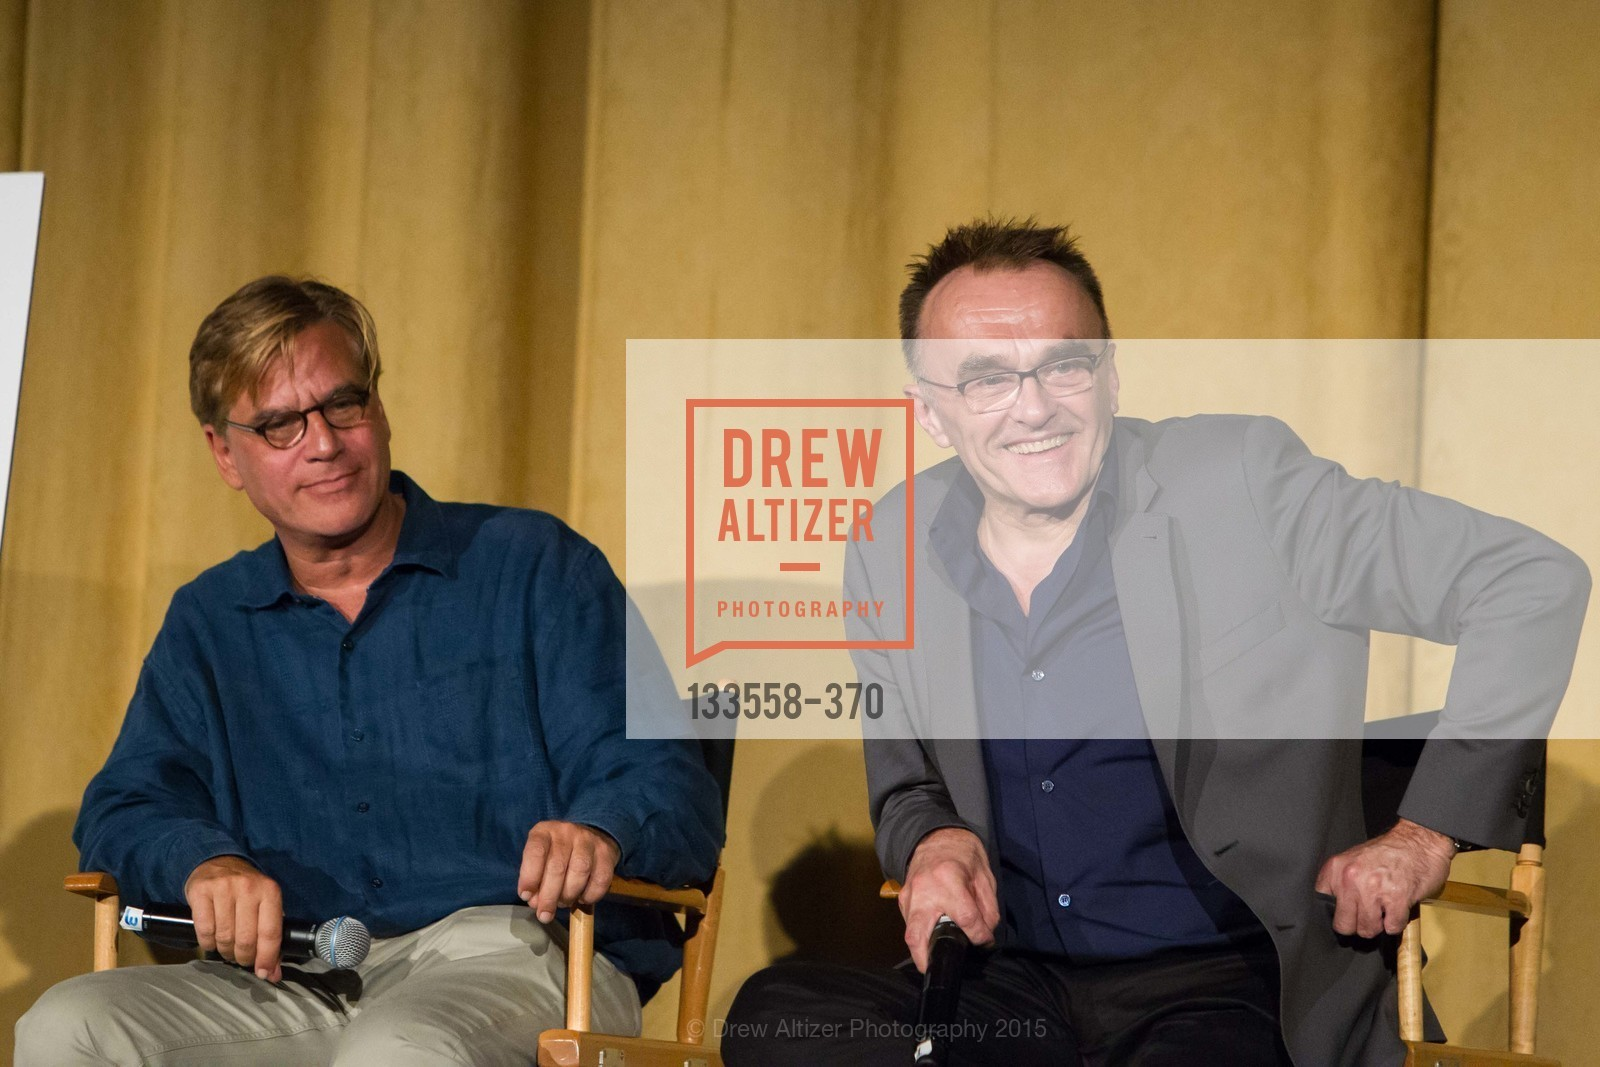 Screenwriter Aaron Sorkin And Director Danny Boyle, SAN FRANCISCO SPECIAL SCREENING OF STEVE JOBS PRESENTED BY UNIVERSAL PICTURES, OCTOBER 9, 2015 AT THE CASTRO THEATRE, Castro Theater, October 9th, 2015,Drew Altizer, Drew Altizer Photography, full-service agency, private events, San Francisco photographer, photographer california